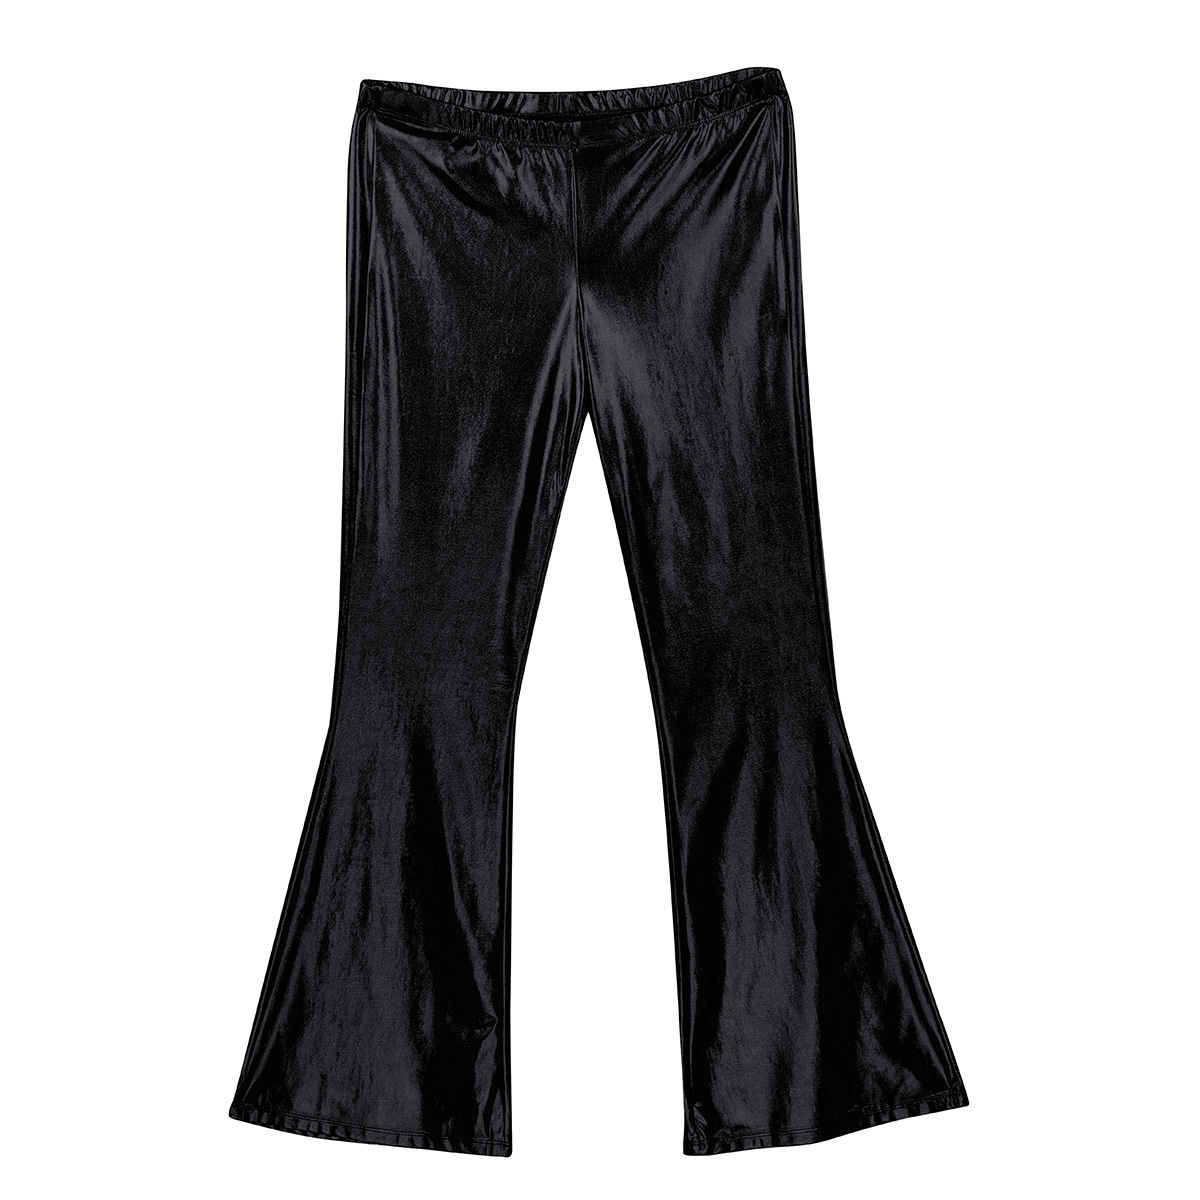 Adult Mens Moto Punk Style Party Pants Shiny Metallic Disco Pants with Bell Bottom Flared Long Pants Dude Costume Trousers 18